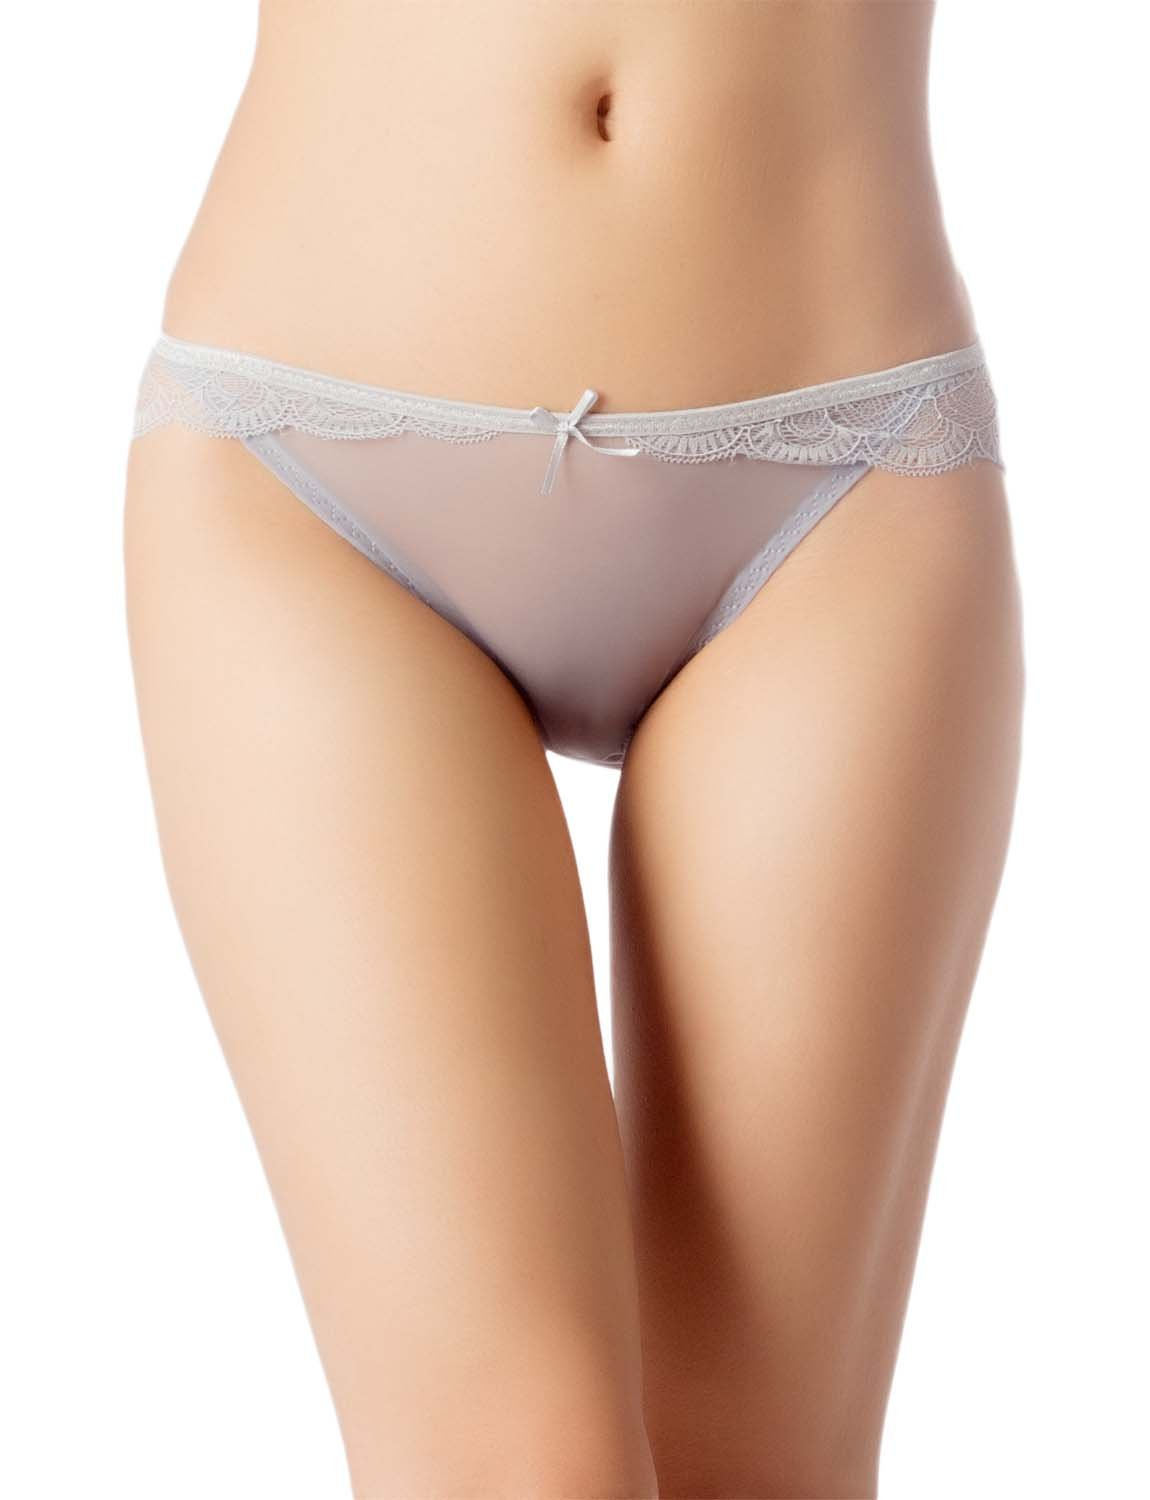 Women's Cotton Layered Lace Wings Trimmed See-Through Low Rise Brief Panty, Size: L, Light Grey